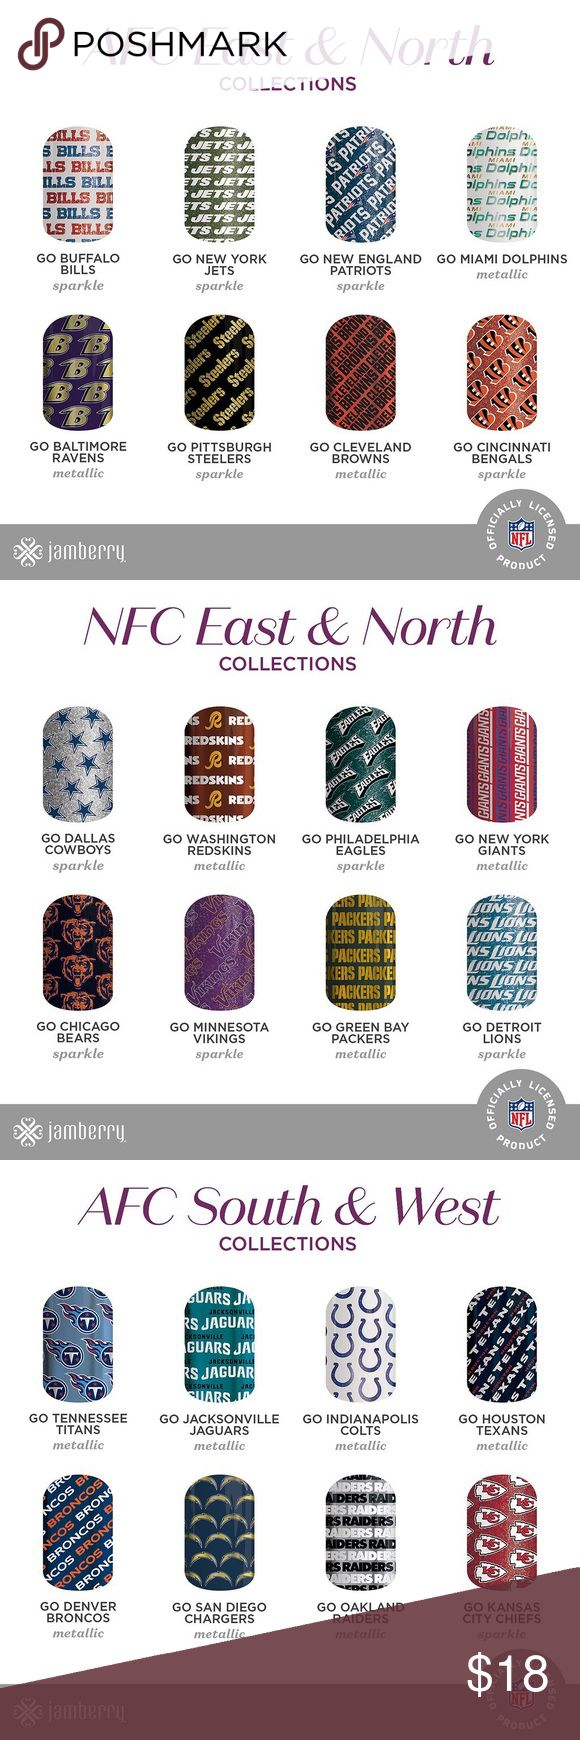 All 32 NFL collection by Jamberry volume 2 OUR NFL Collections by jamberry  volume 2 are in! Who's ready to get hands and toes sporting their team!  Even better news buy 3 get 1 free deals are included!! Yay!!!!   Don't forget if you order you get A FREE HALF A SHEET BY ME! :) Other